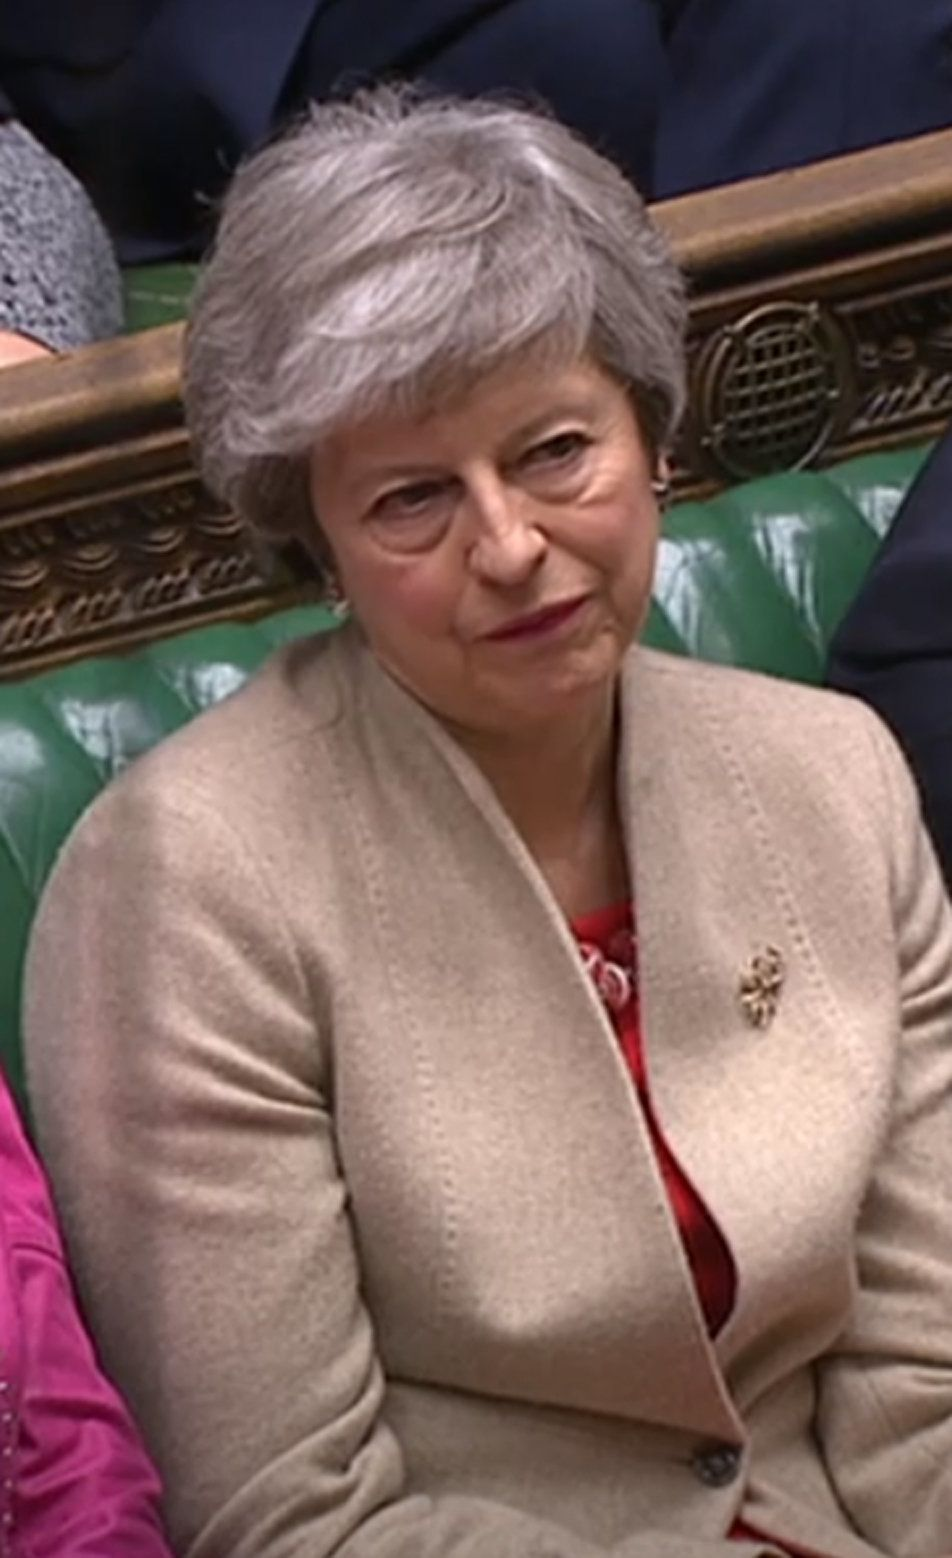 Prime Minister Theresa May listens the Brexit debate in the House of Commons.